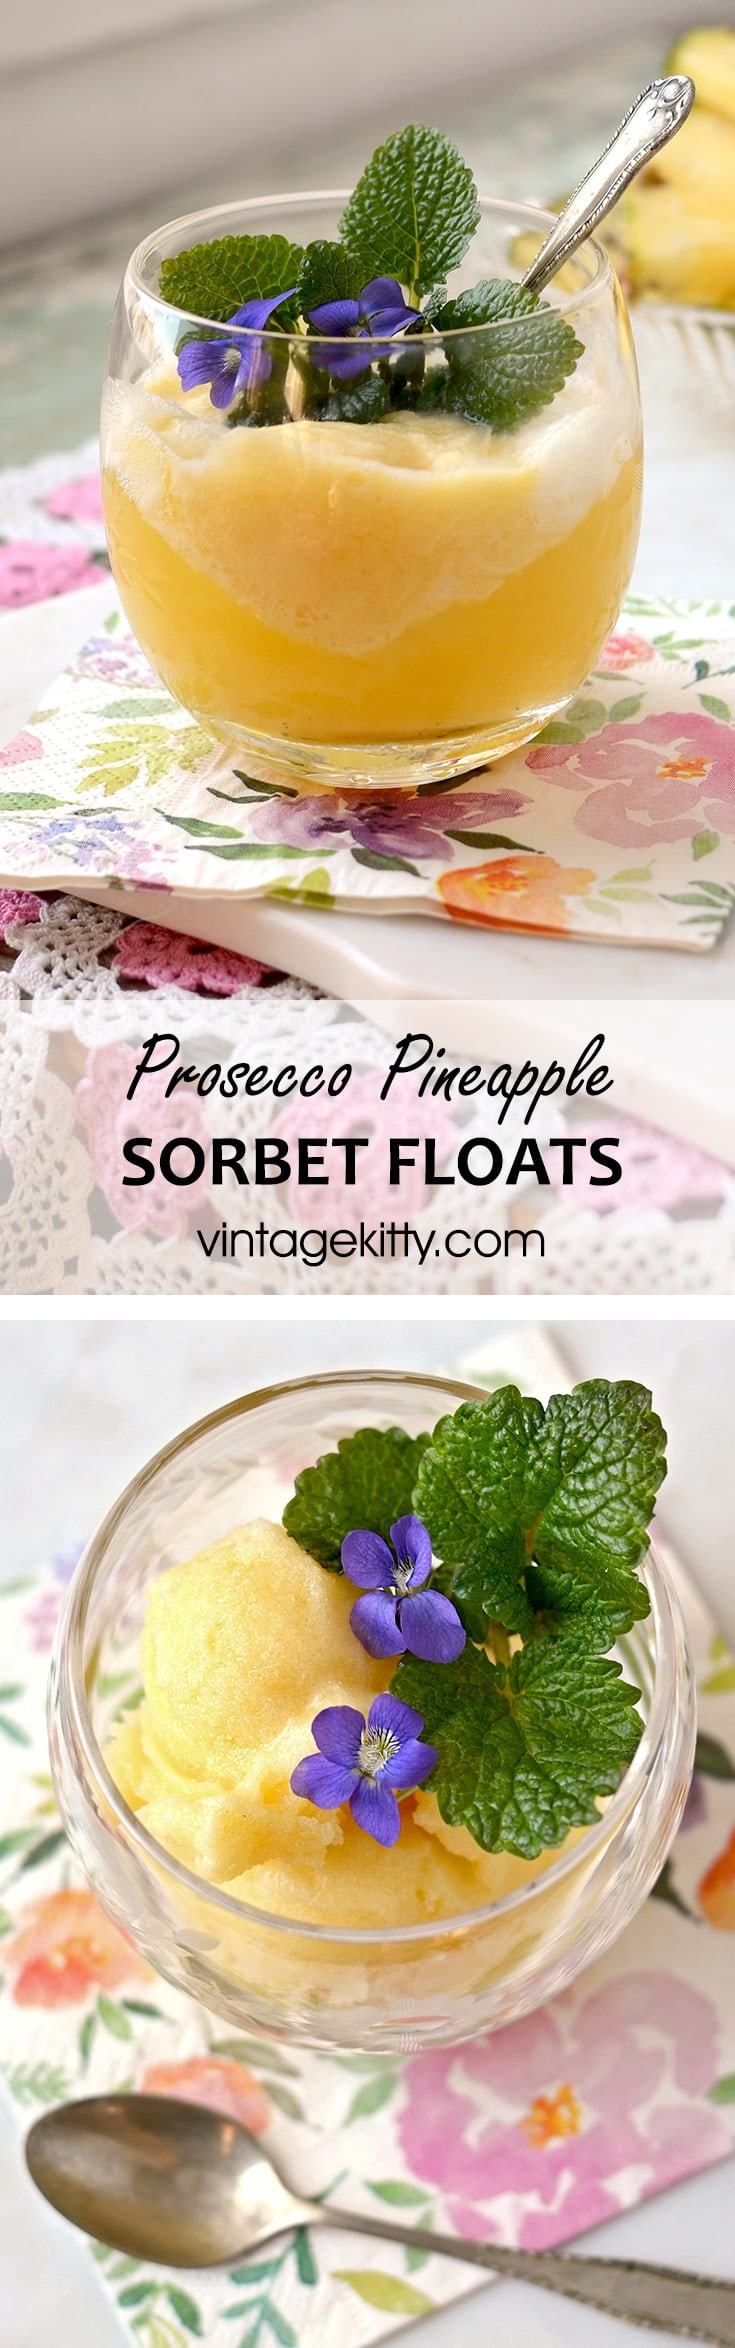 Prosecco pineapple sorbet floats vintage kitty for Prosecco dessert recipes